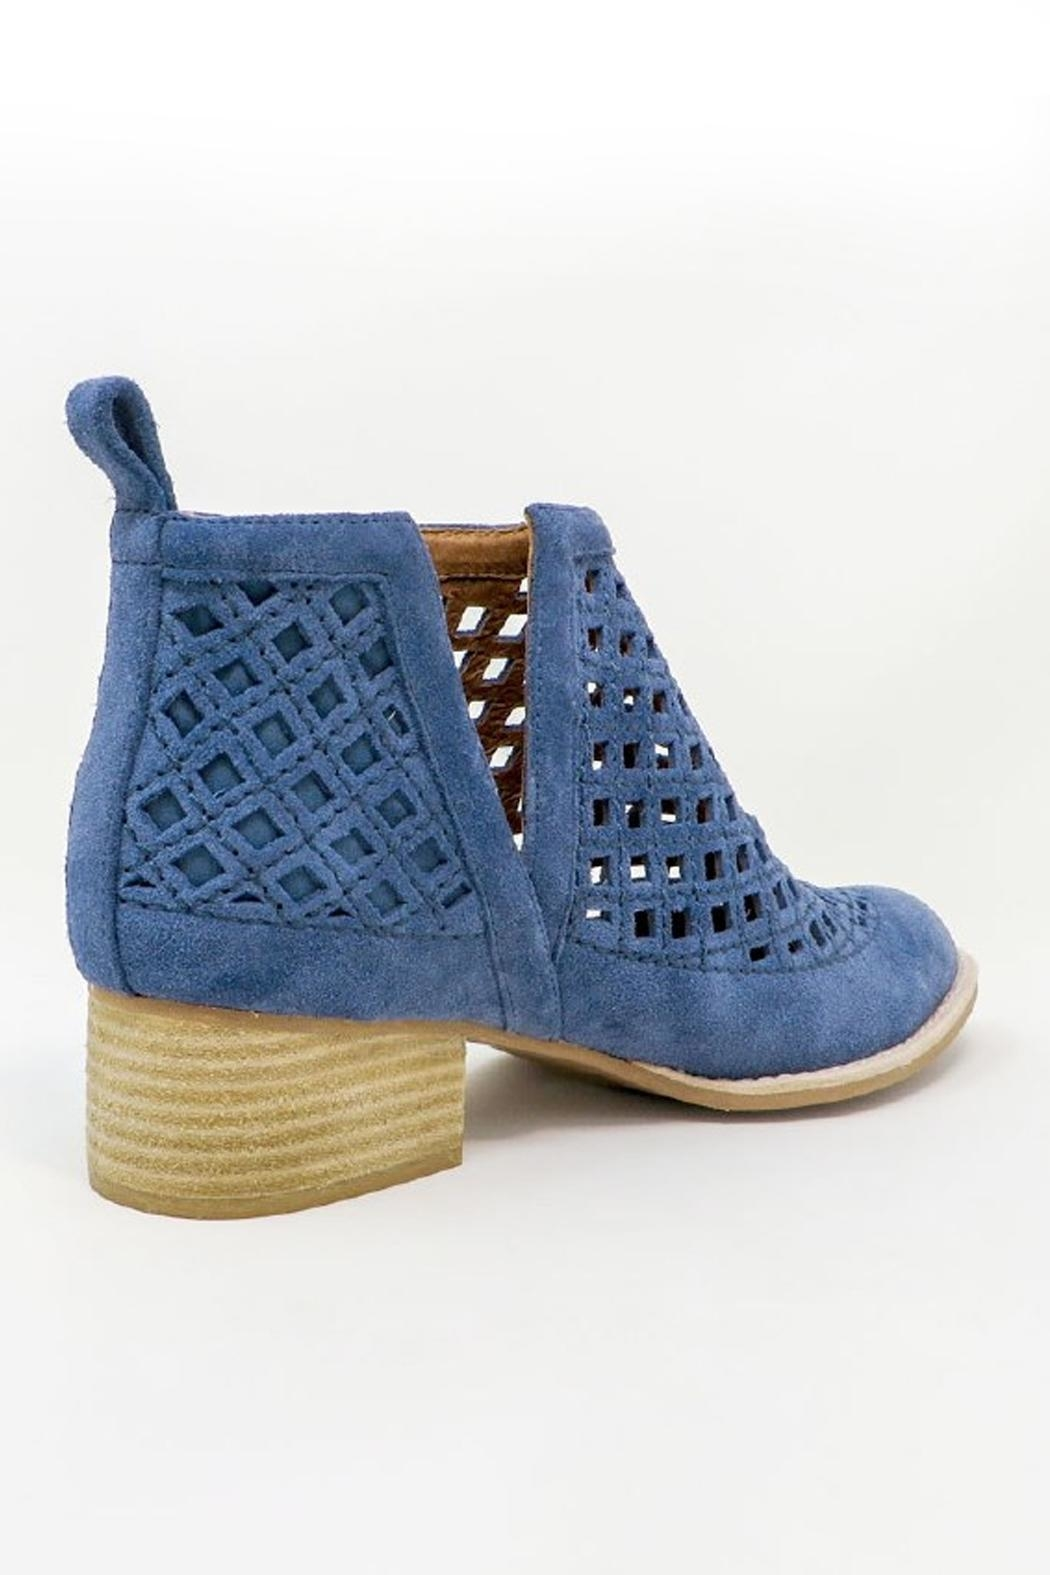 Jeffrey Campbell Blue Perforated Booties - Front Full Image